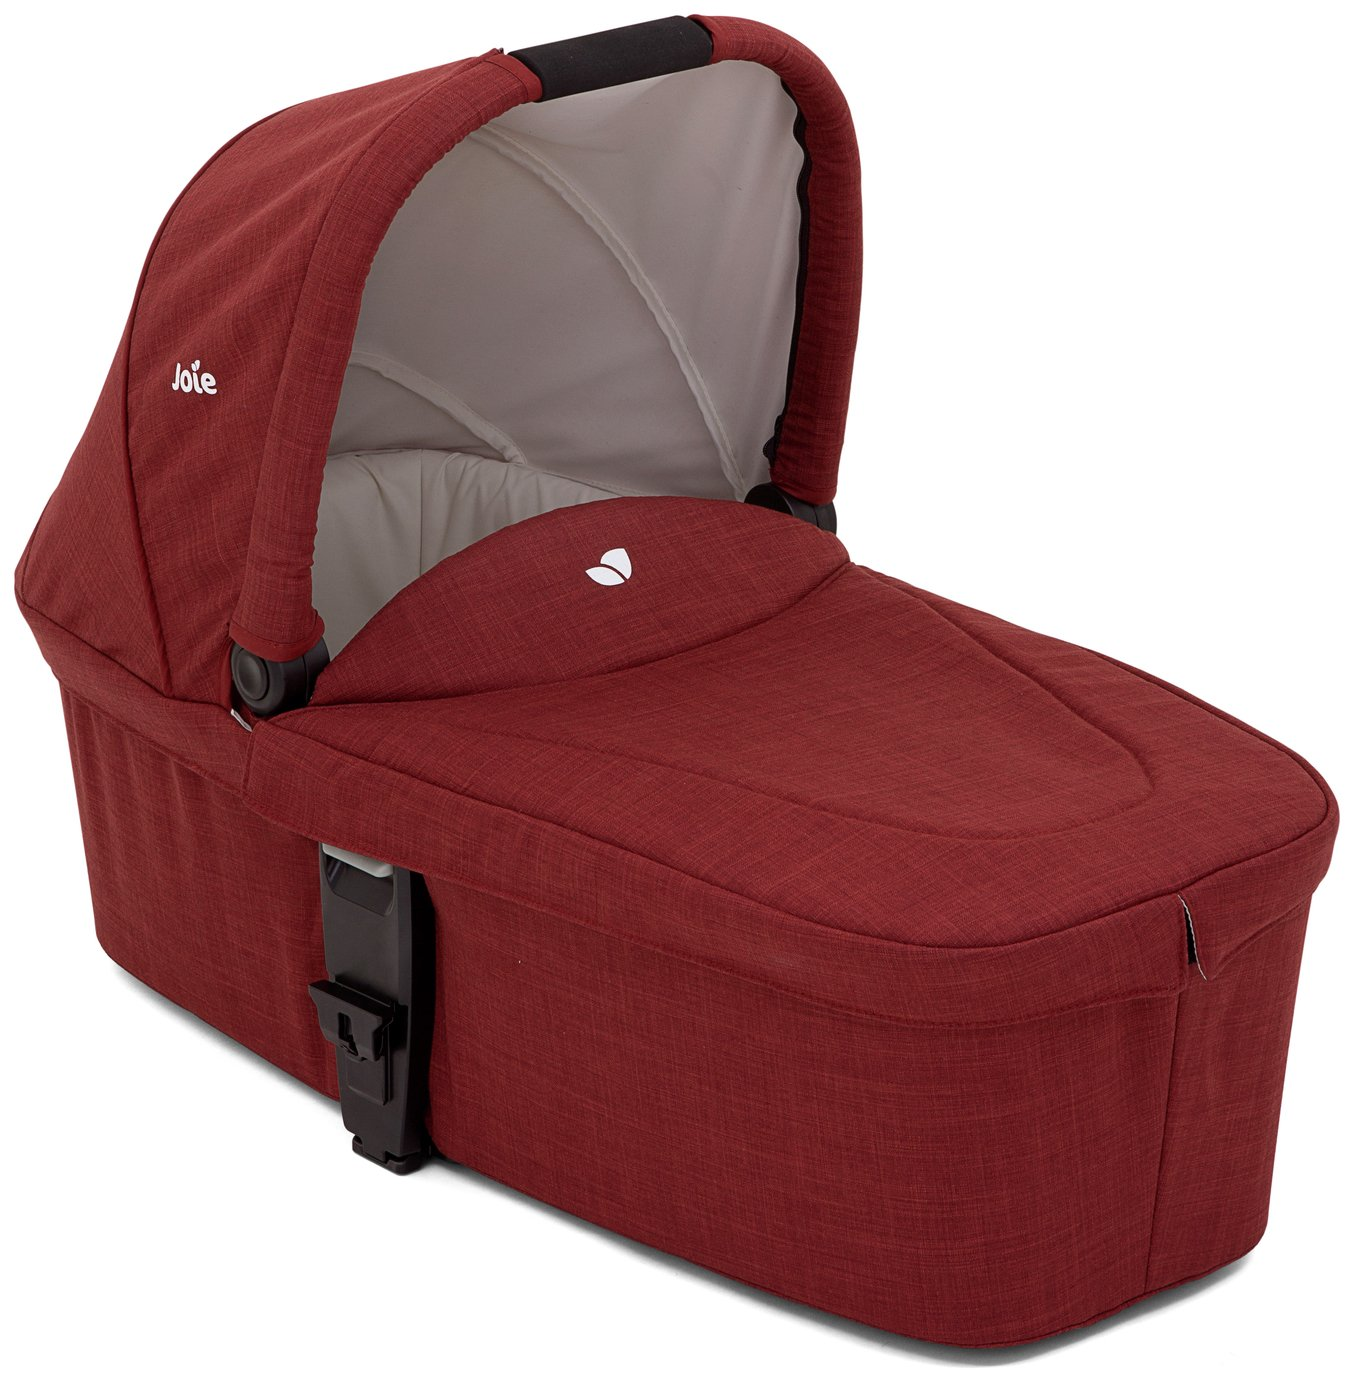 Image of Joie Cranberry Chrome DLX Carry Cot.